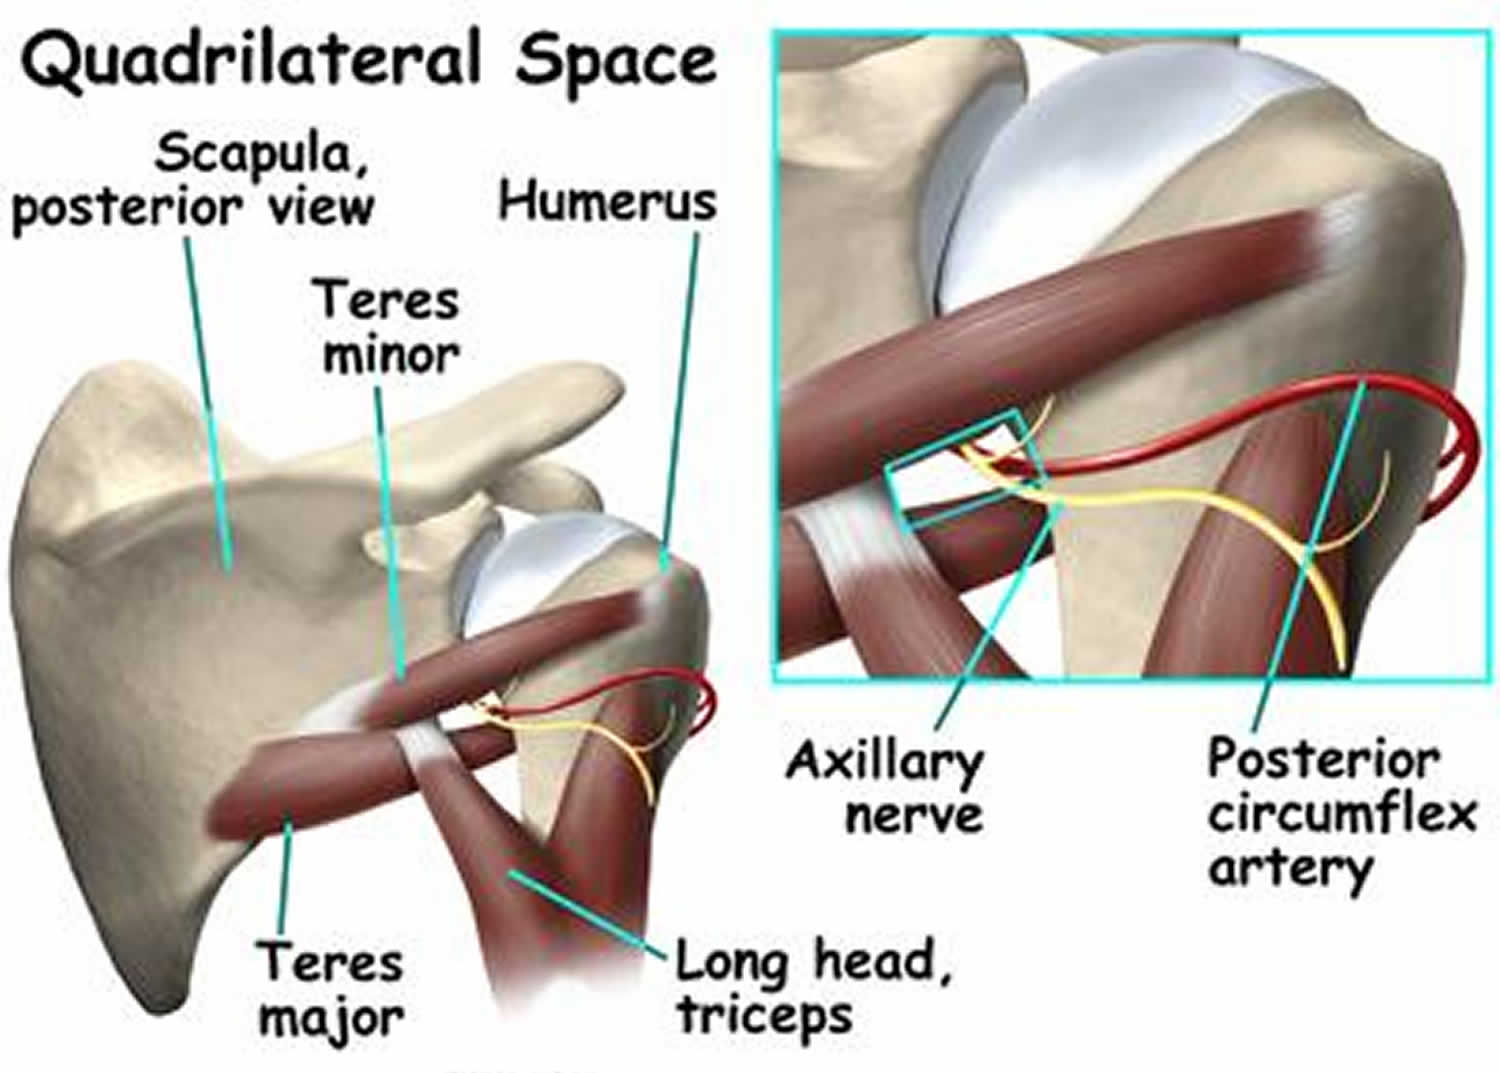 quadrilateral space syndrome